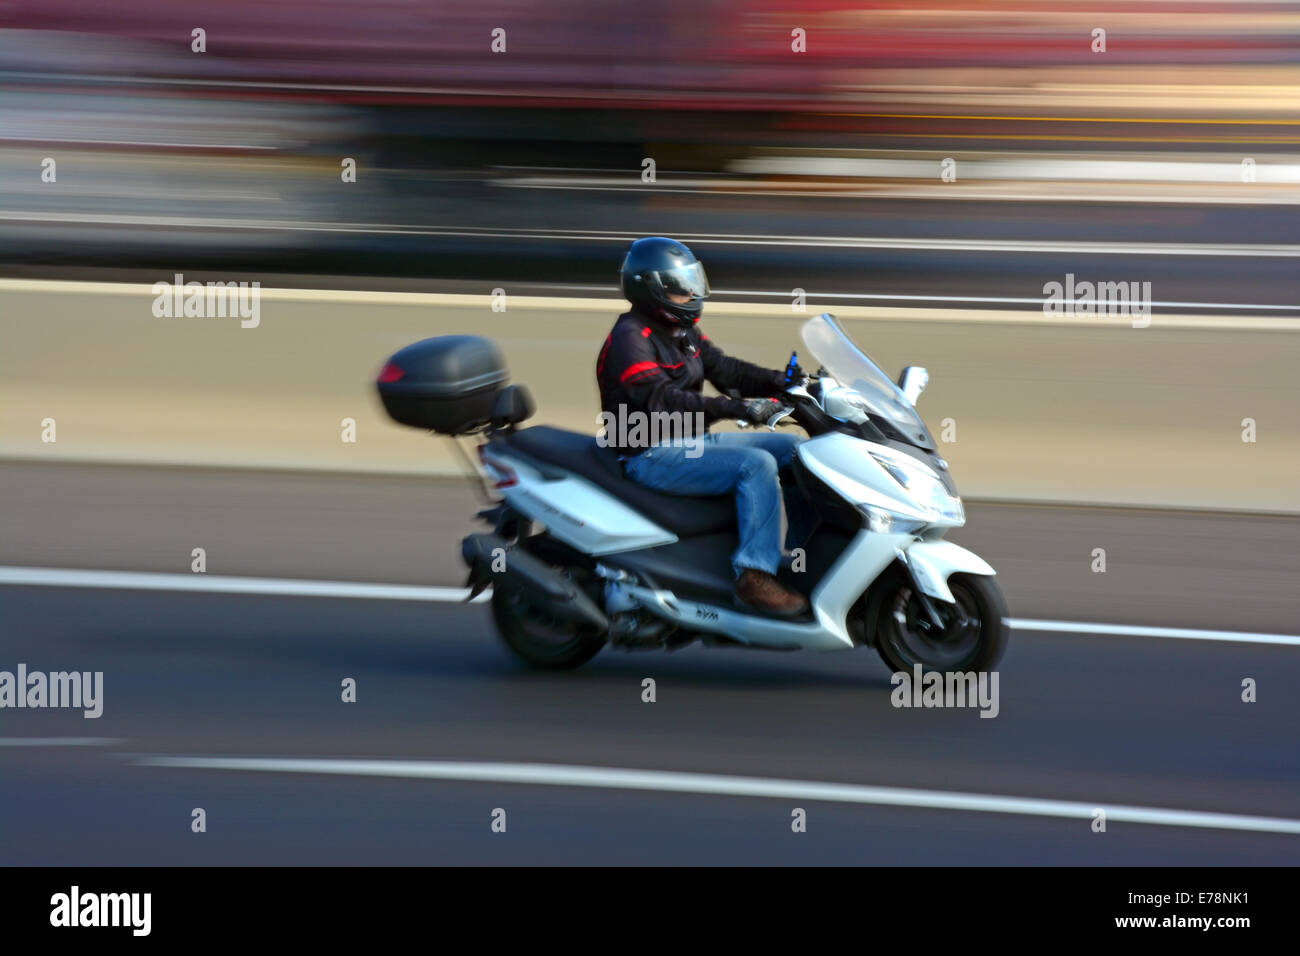 Motorcycle, blurred motion - Stock Image